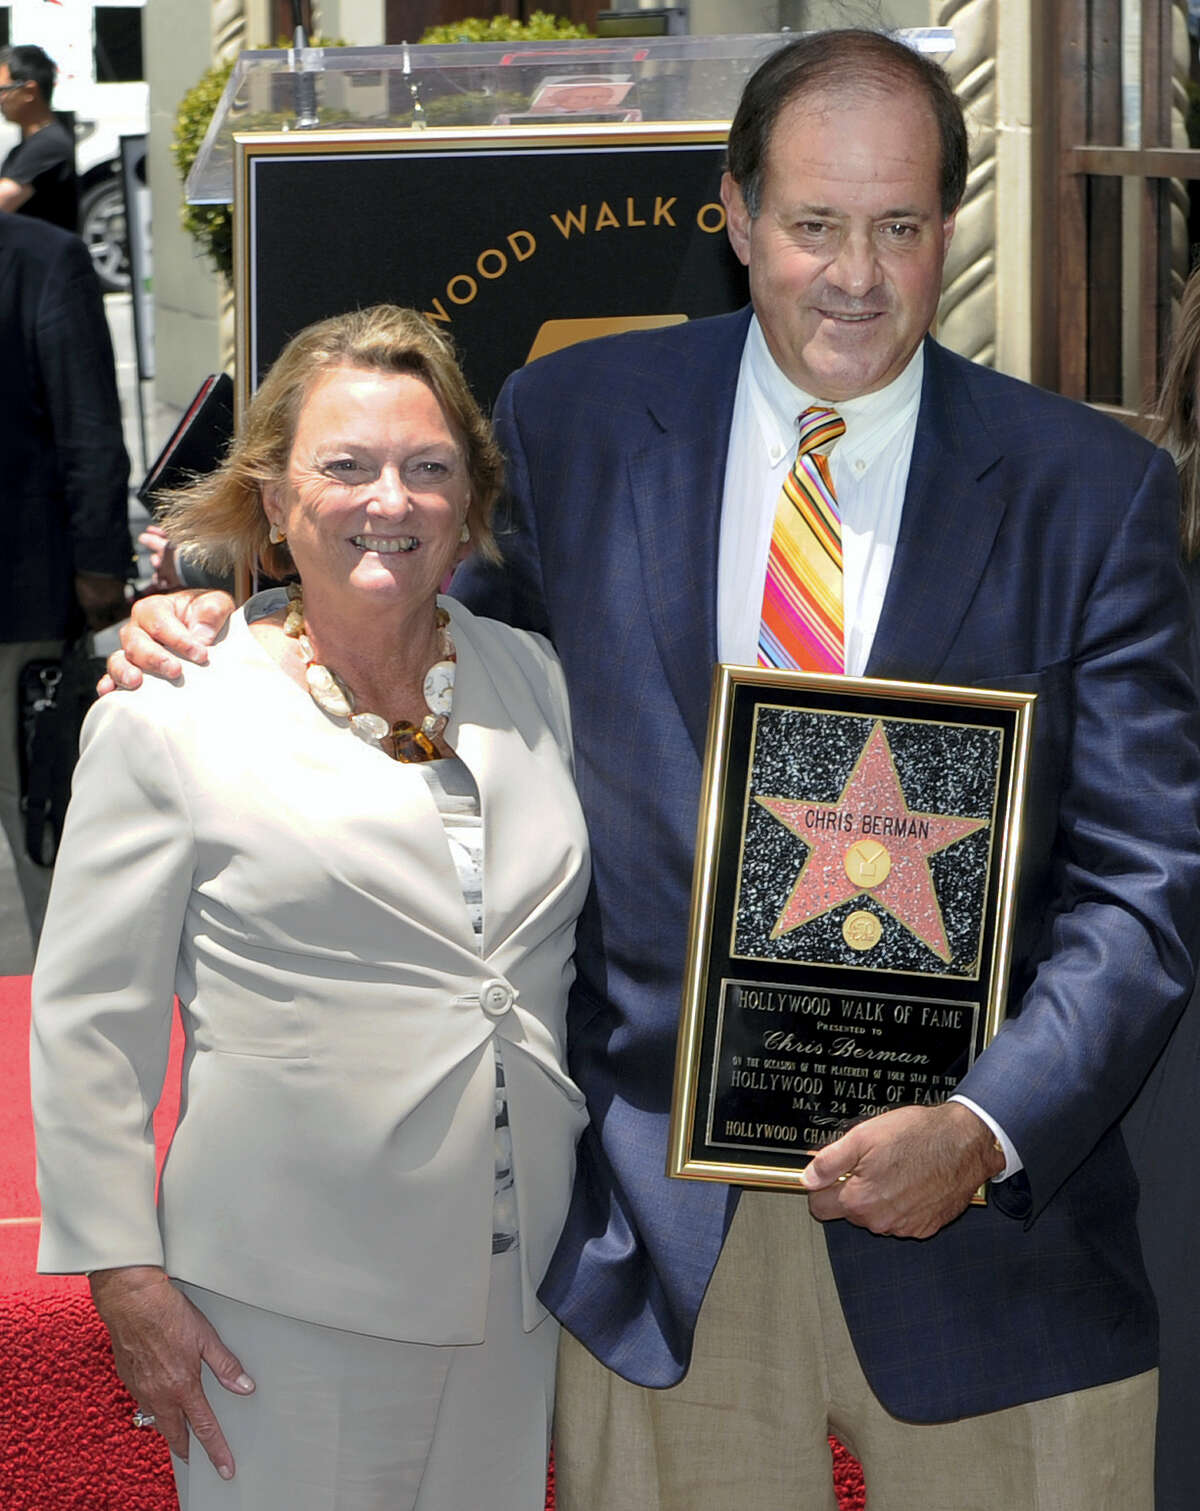 In this May 24, 2010, photo provided by ESPN, sportscaster Chris Berman stands with his wife, Katherine, upon receiving his star on the Hollywood Walk of Fame in Los Angeles. Katherine Ann Berman, 67, a teacher, was one of two victims in a two-vehicle crash at about 2:15 p.m. on May 9, 2017 in Woodbury, state police said.